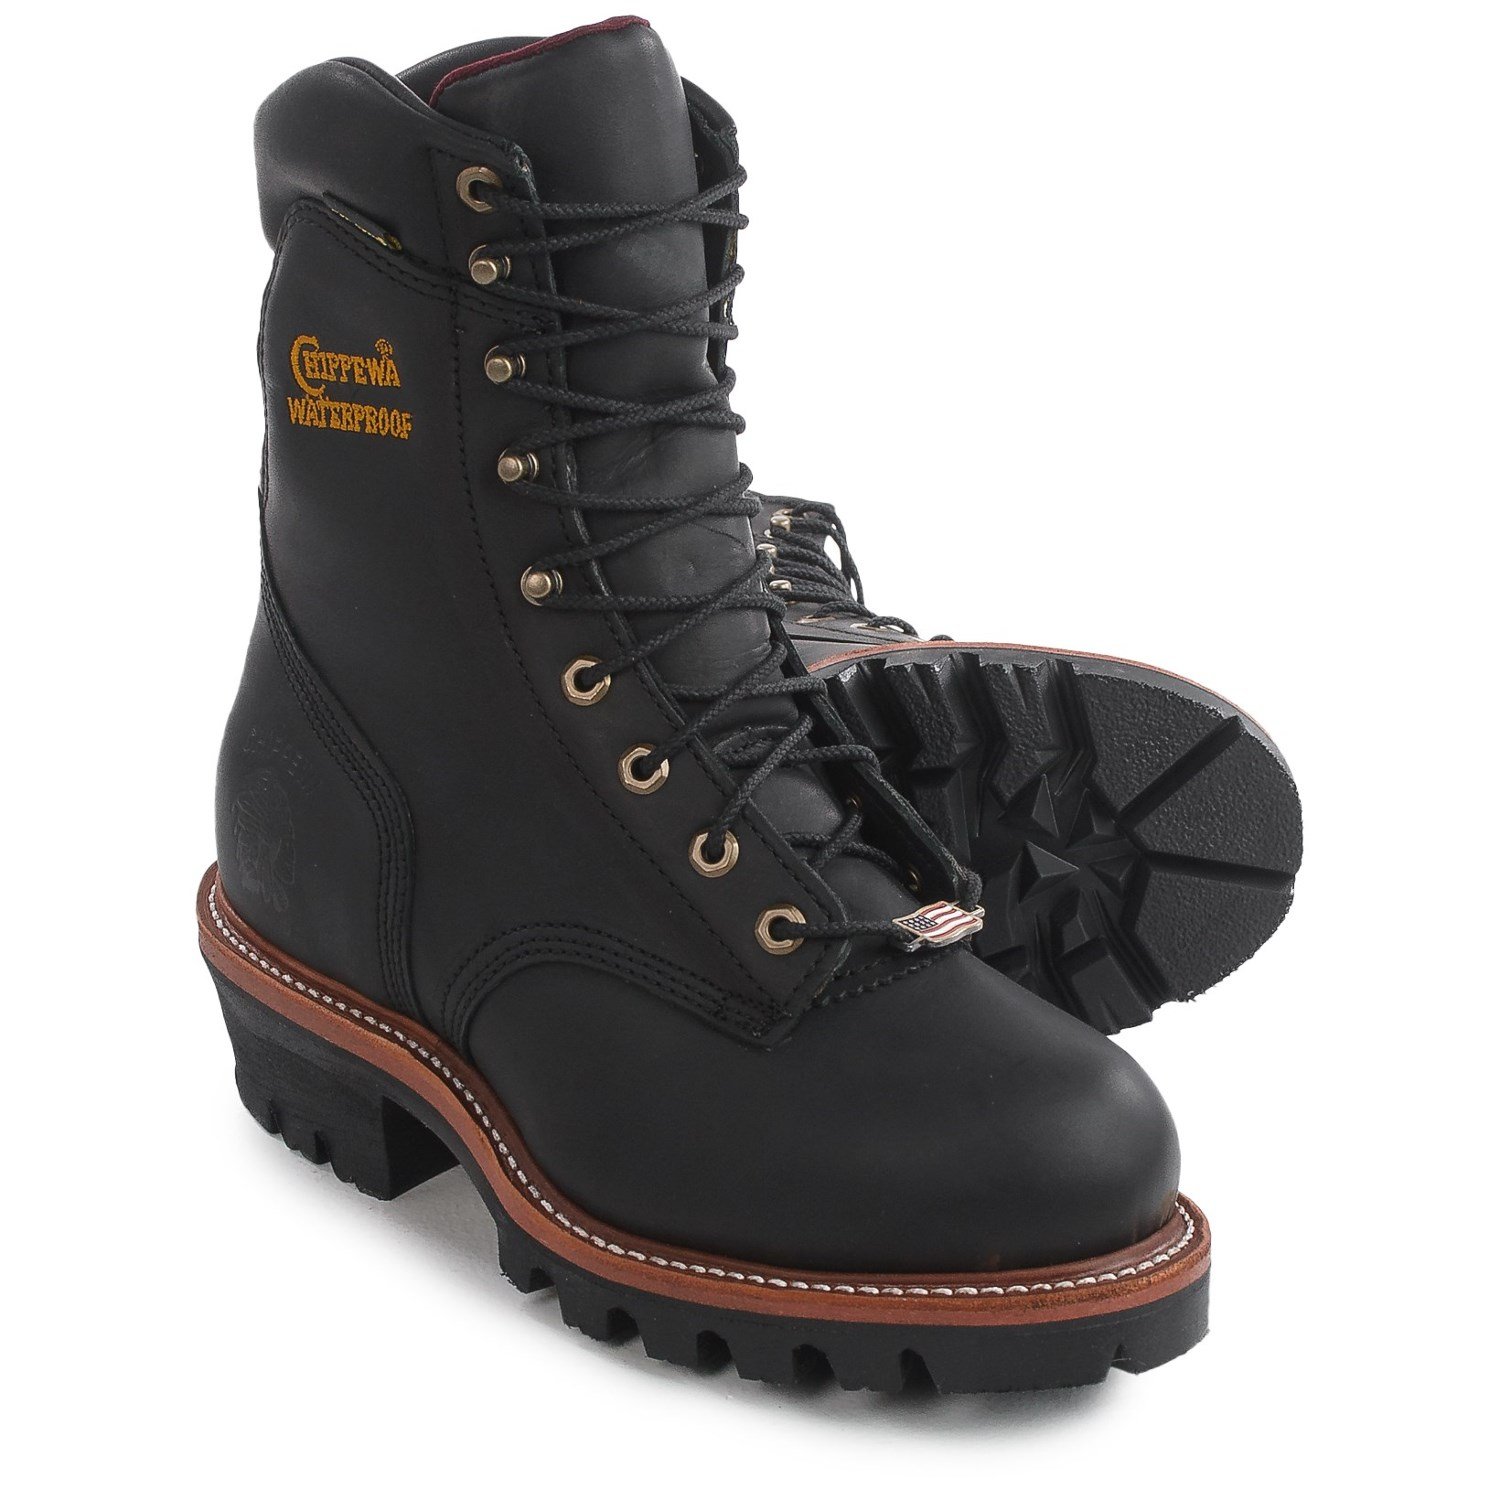 Chippewa Super Logger 9 Quot Work Boots For Men Save 45